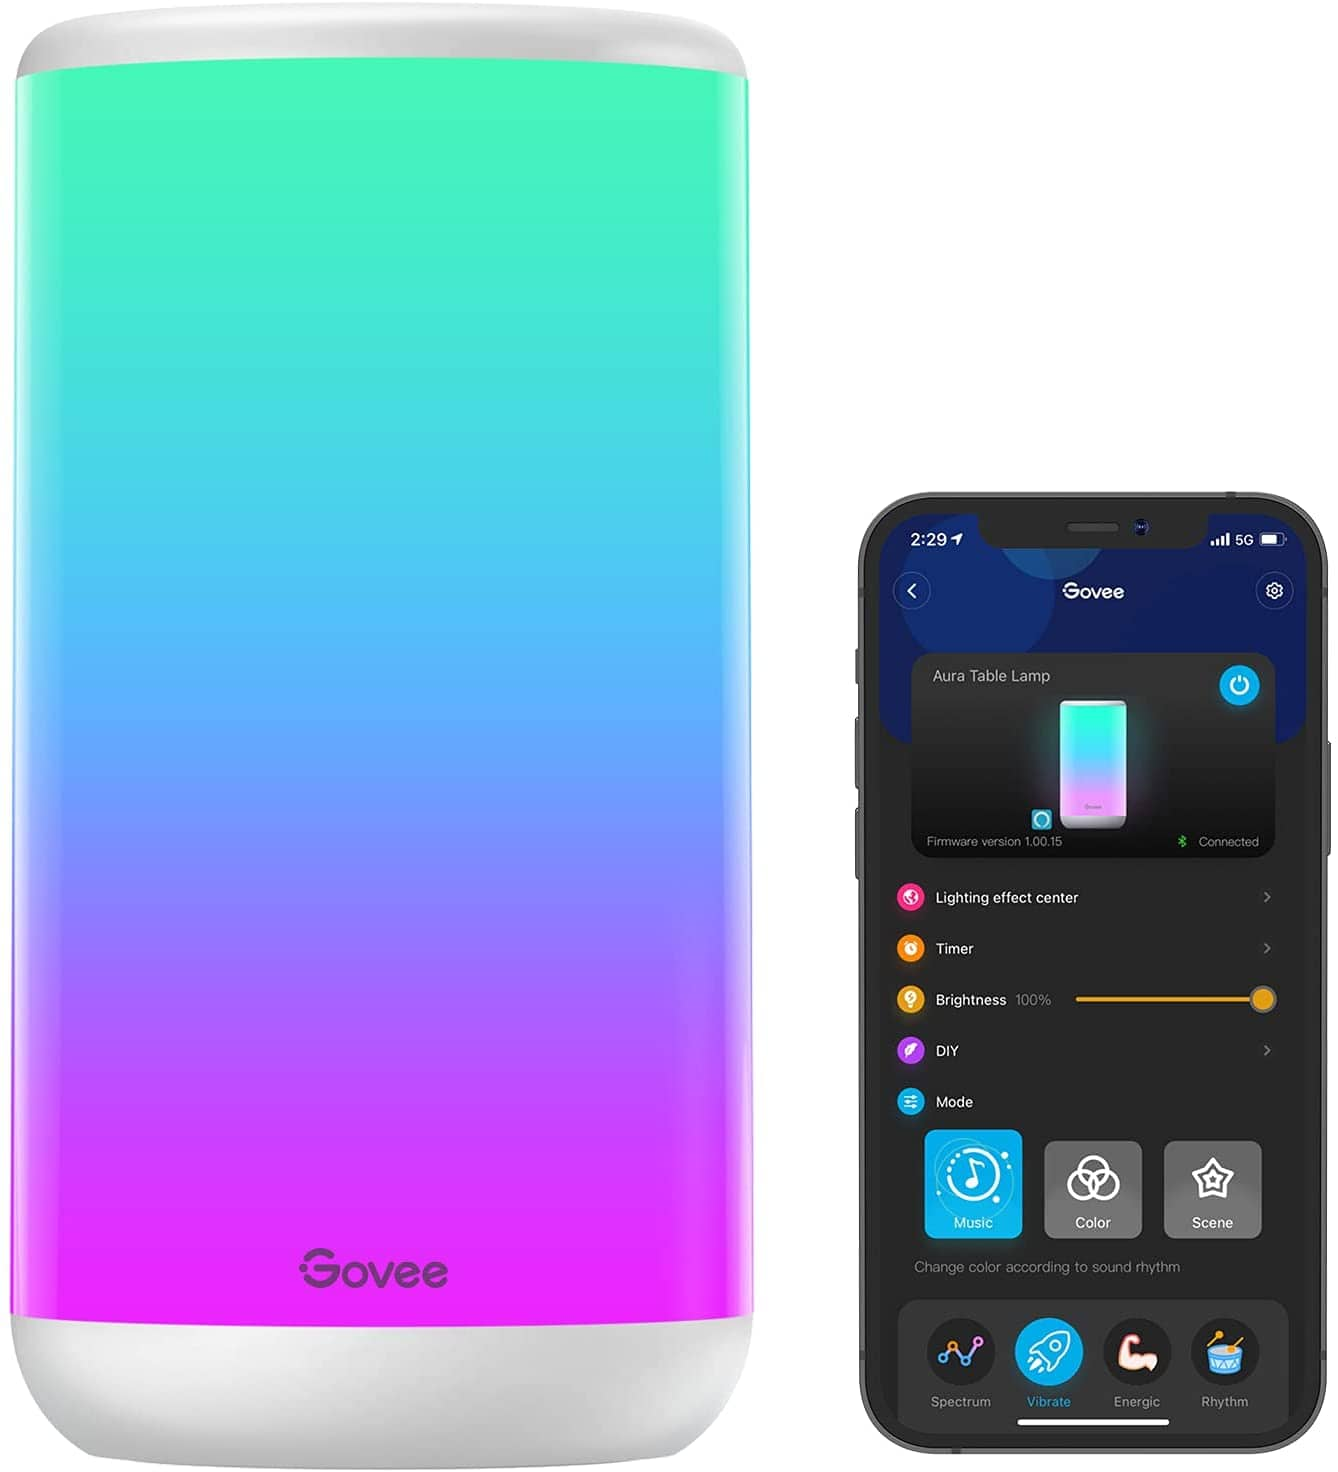 Govee Smart  RGBIC Table Lamp, App Control with Scene Modes and Music Mode, Works with Alexa & Google Assistant-$41.99 + FS